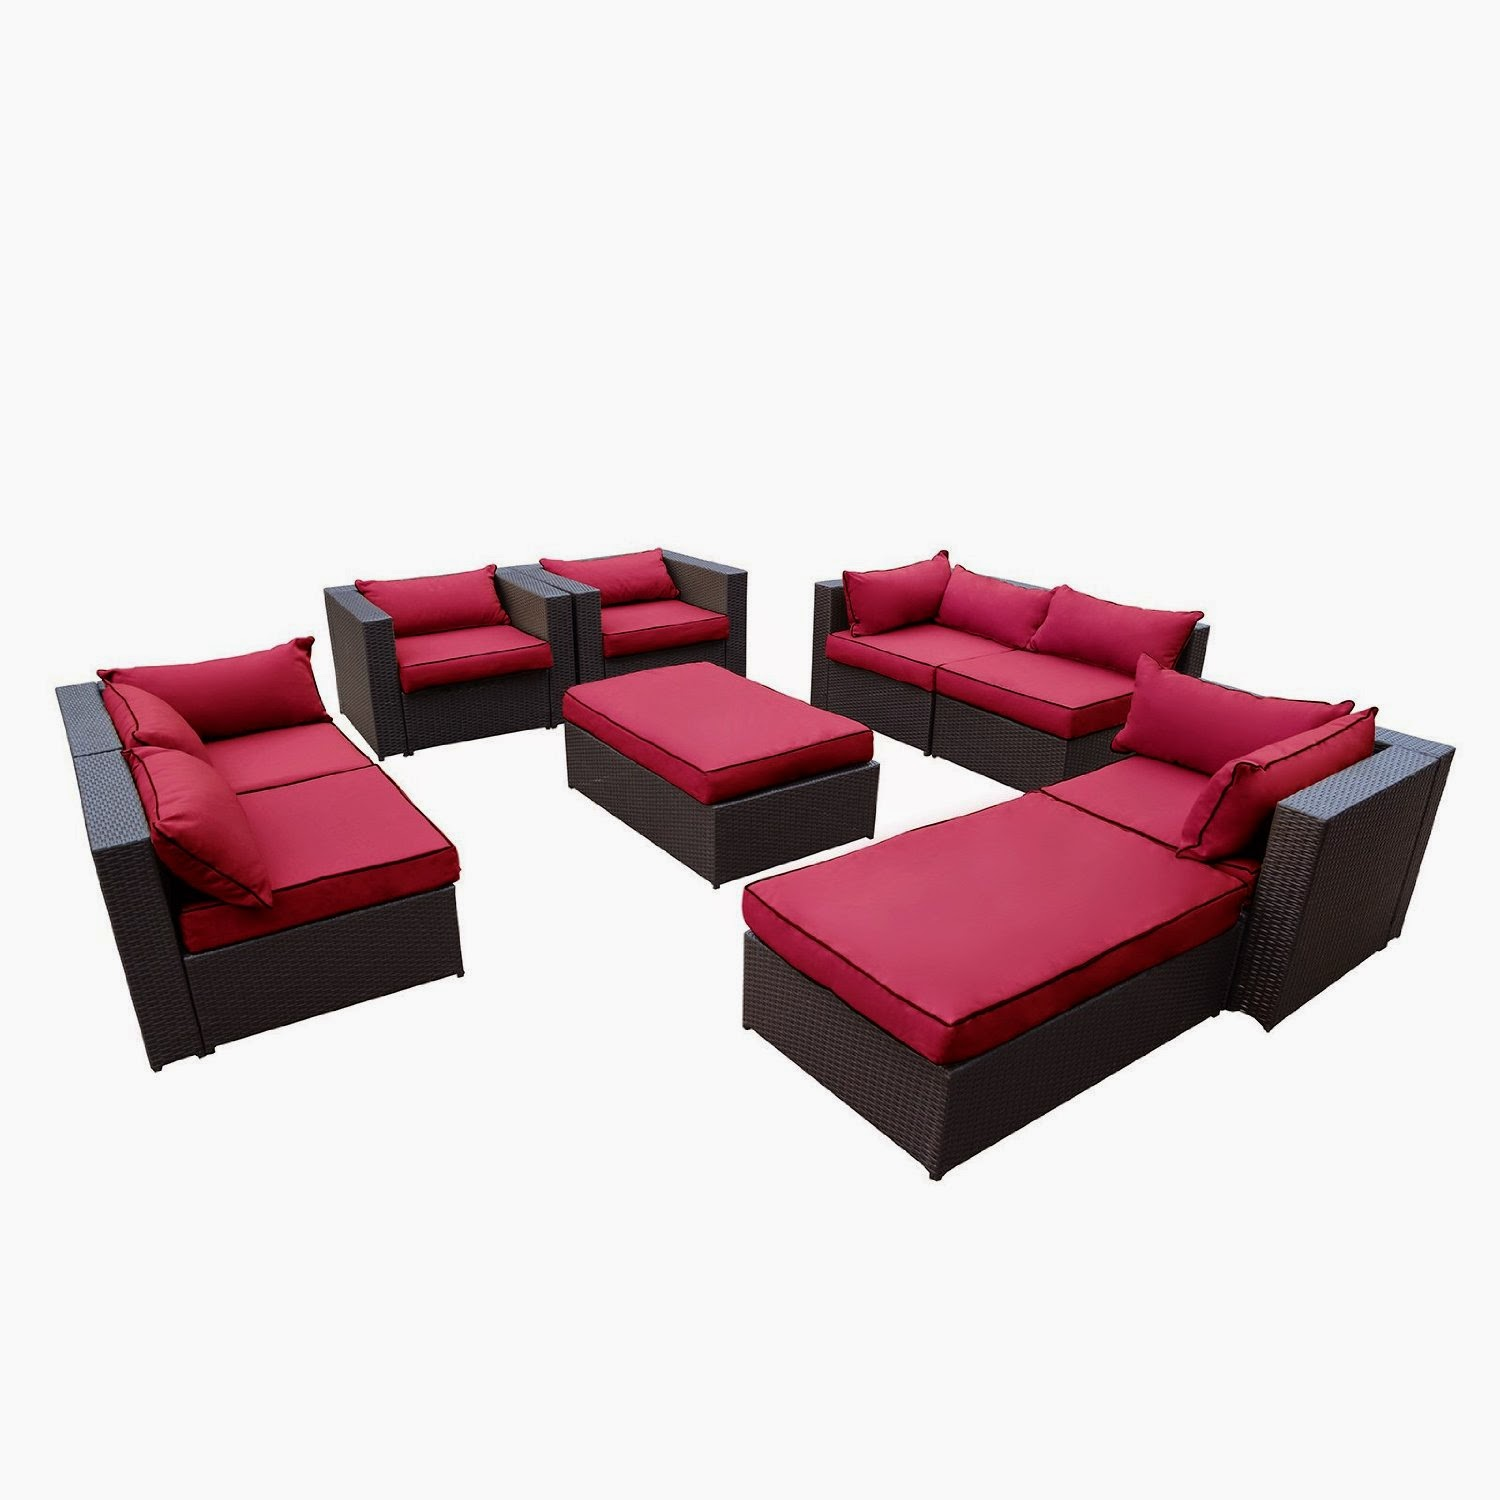 Outdoor patio rattan wicker furniture sectional sofa for Outdoor wicker furniture